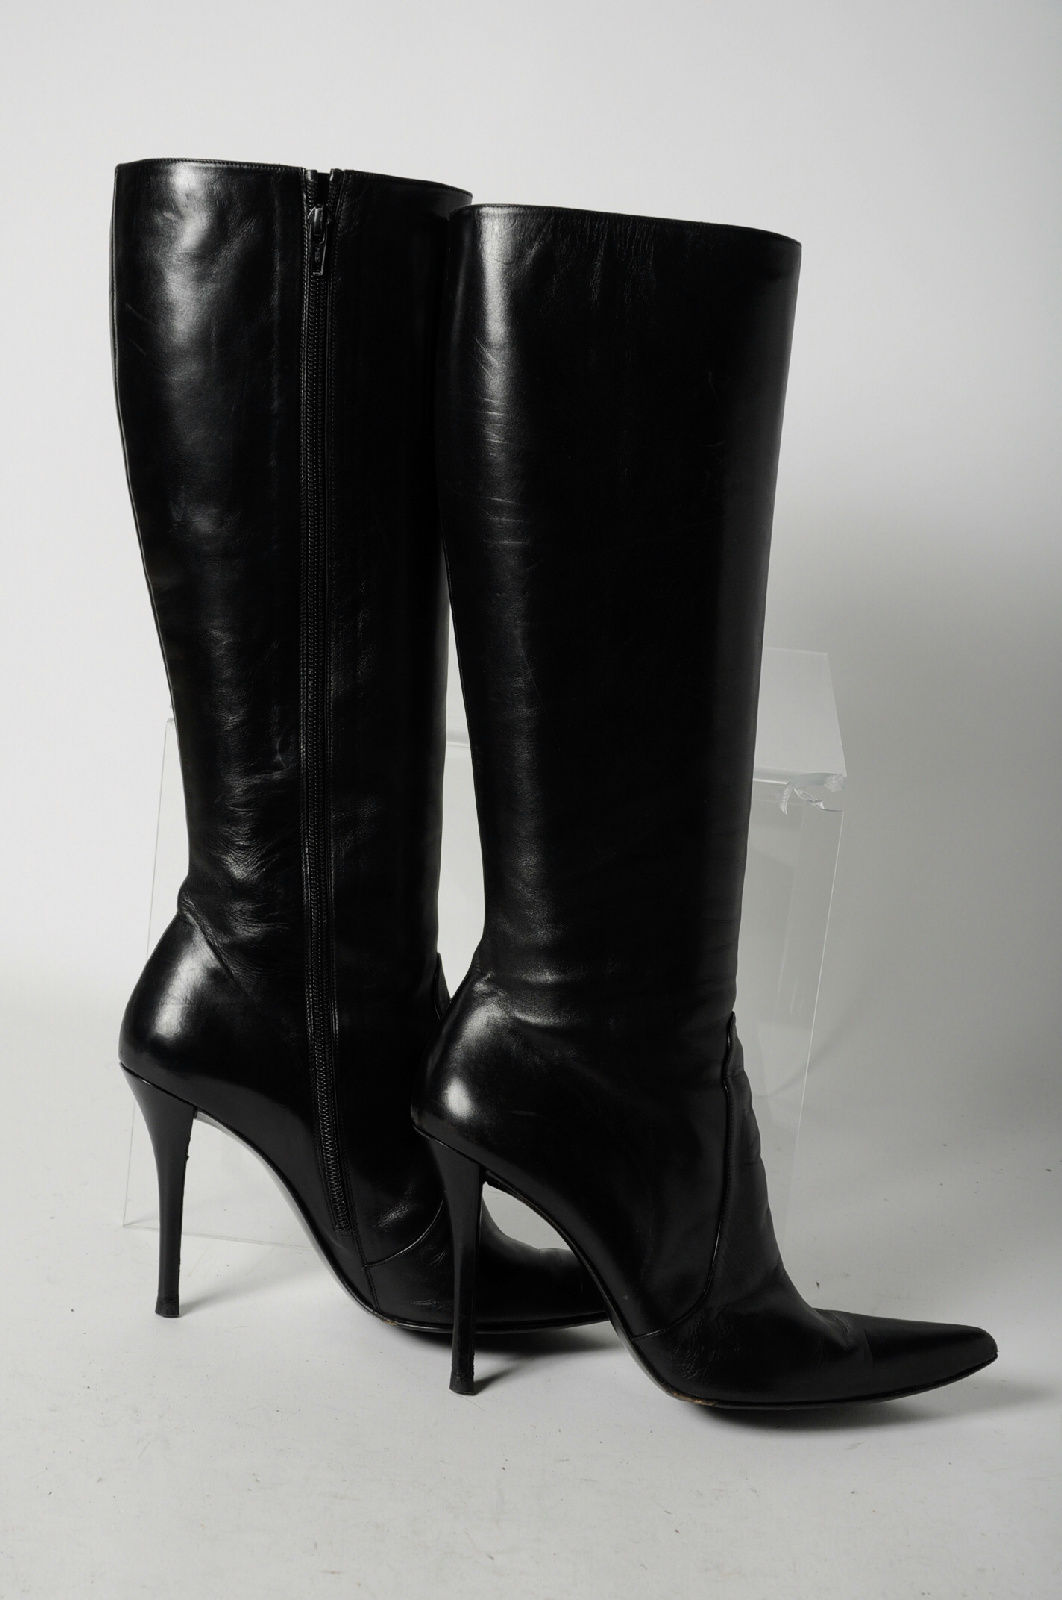 08003e27ede ... these knee-high boots. They re a classic style with sexy spiked heels  and pointed toes - perfect for wearing with a skirt or sweater dress to the  office ...